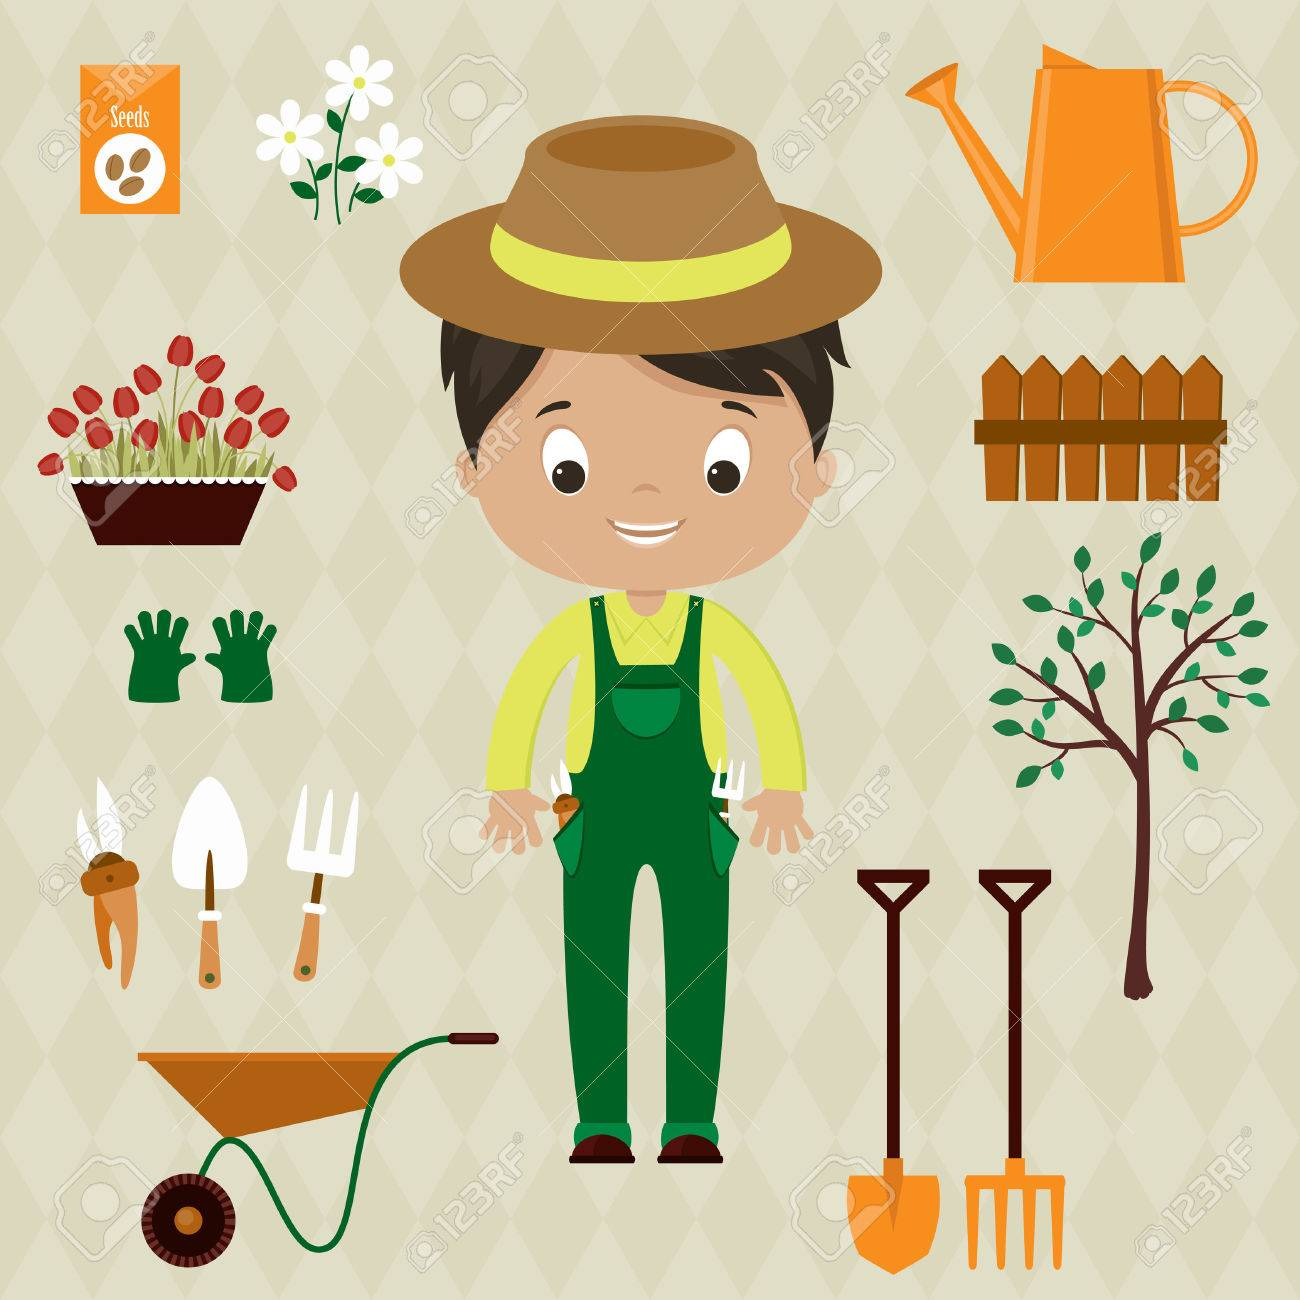 Gardener Man With Garden Tools, Equipment And Flowers. Cute Cartoon Vector  Illustration. Stock